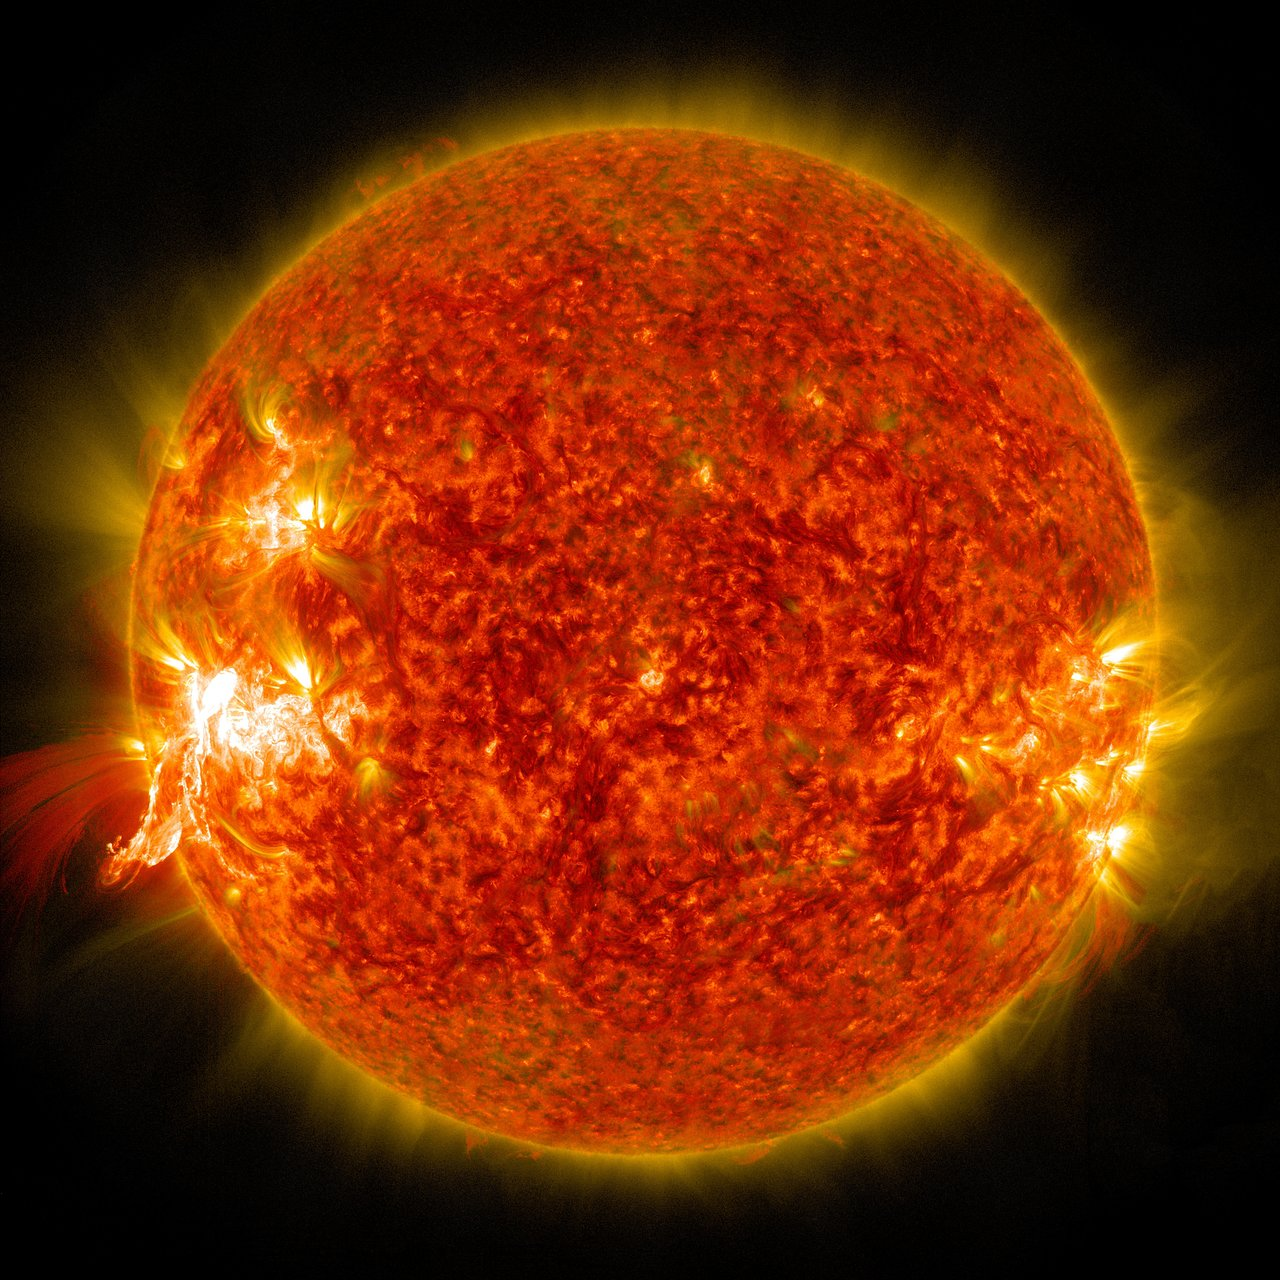 Extreme High Res Image Of The Sun Eso Supernova